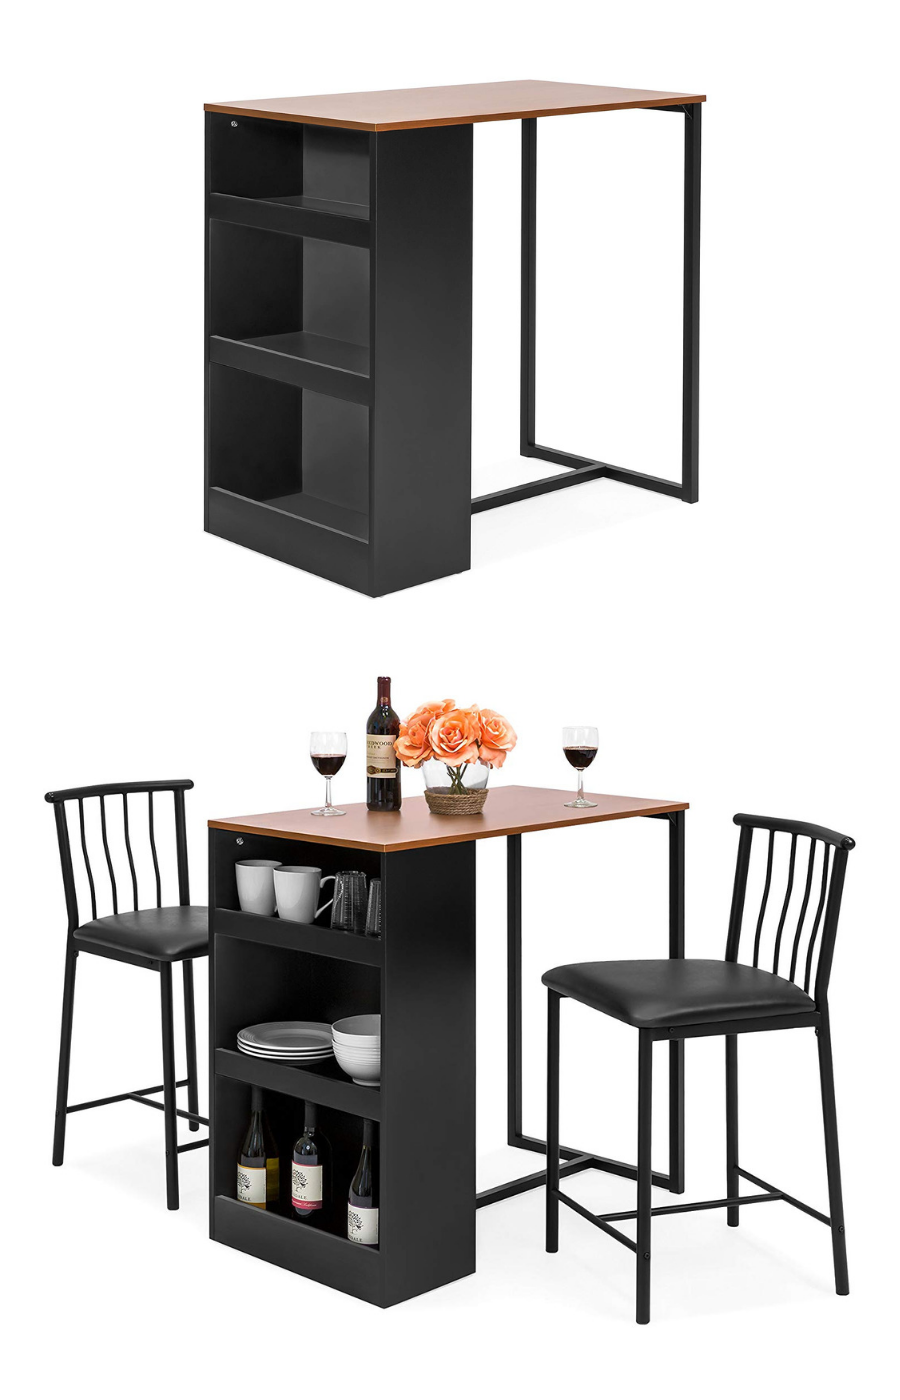 Kitchen Counter Height Dining Table Dining Room Industrial Furniture Dining Room Table Counter Height Dining Table Set